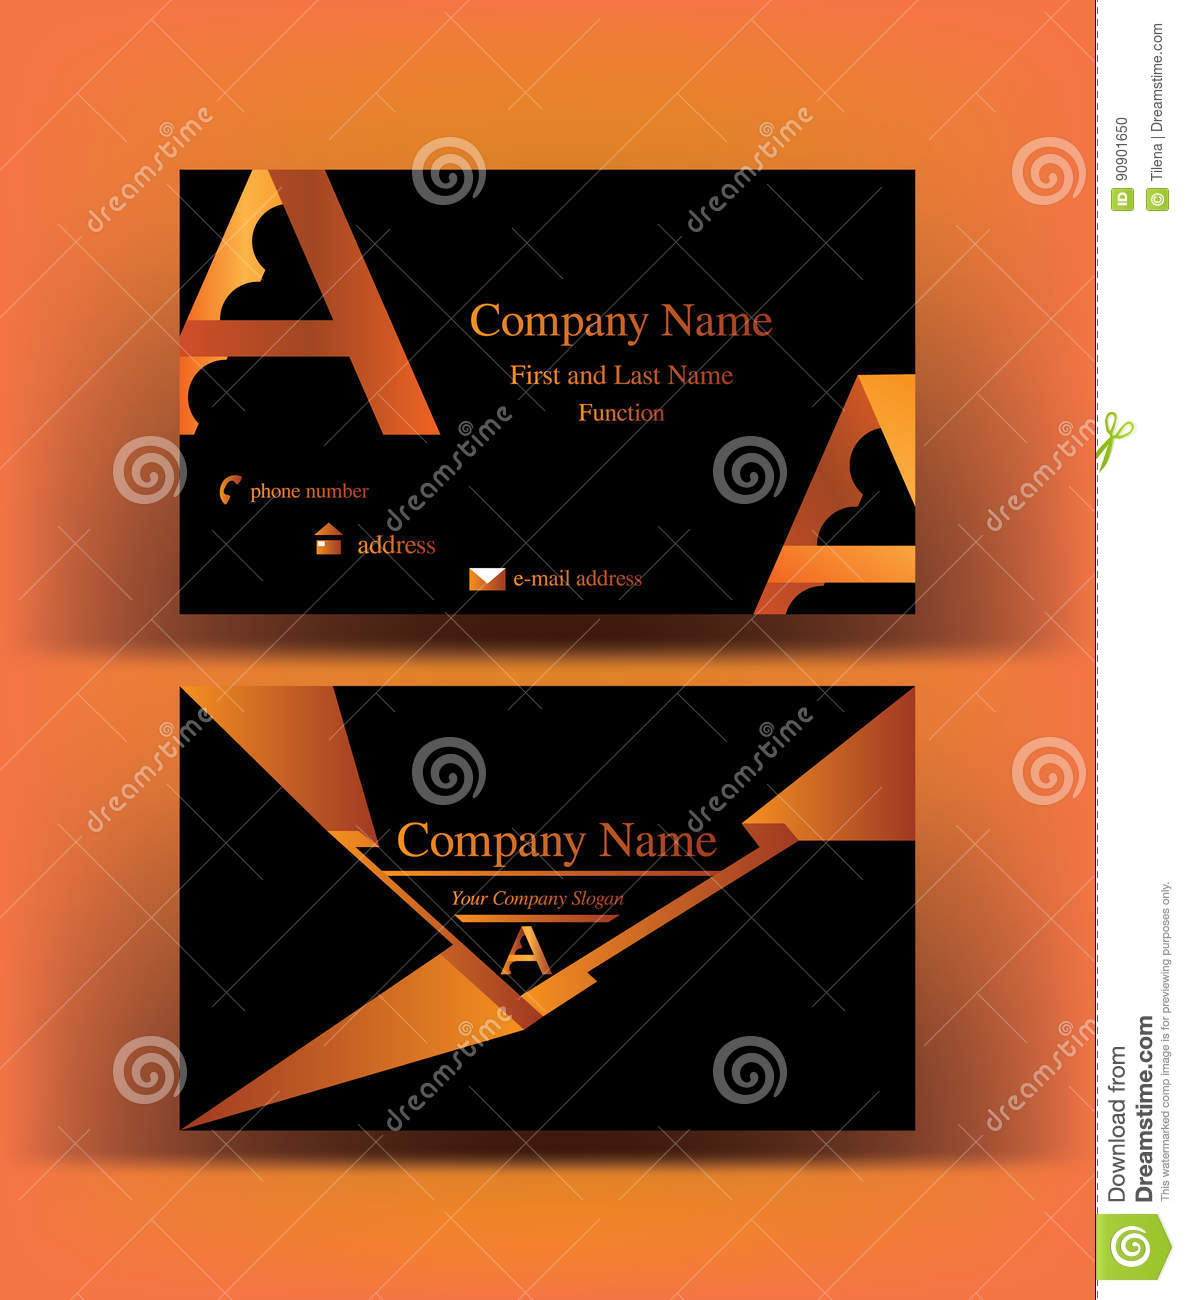 Black Business Card With Abstract A Letter Logo Design On Orange Background